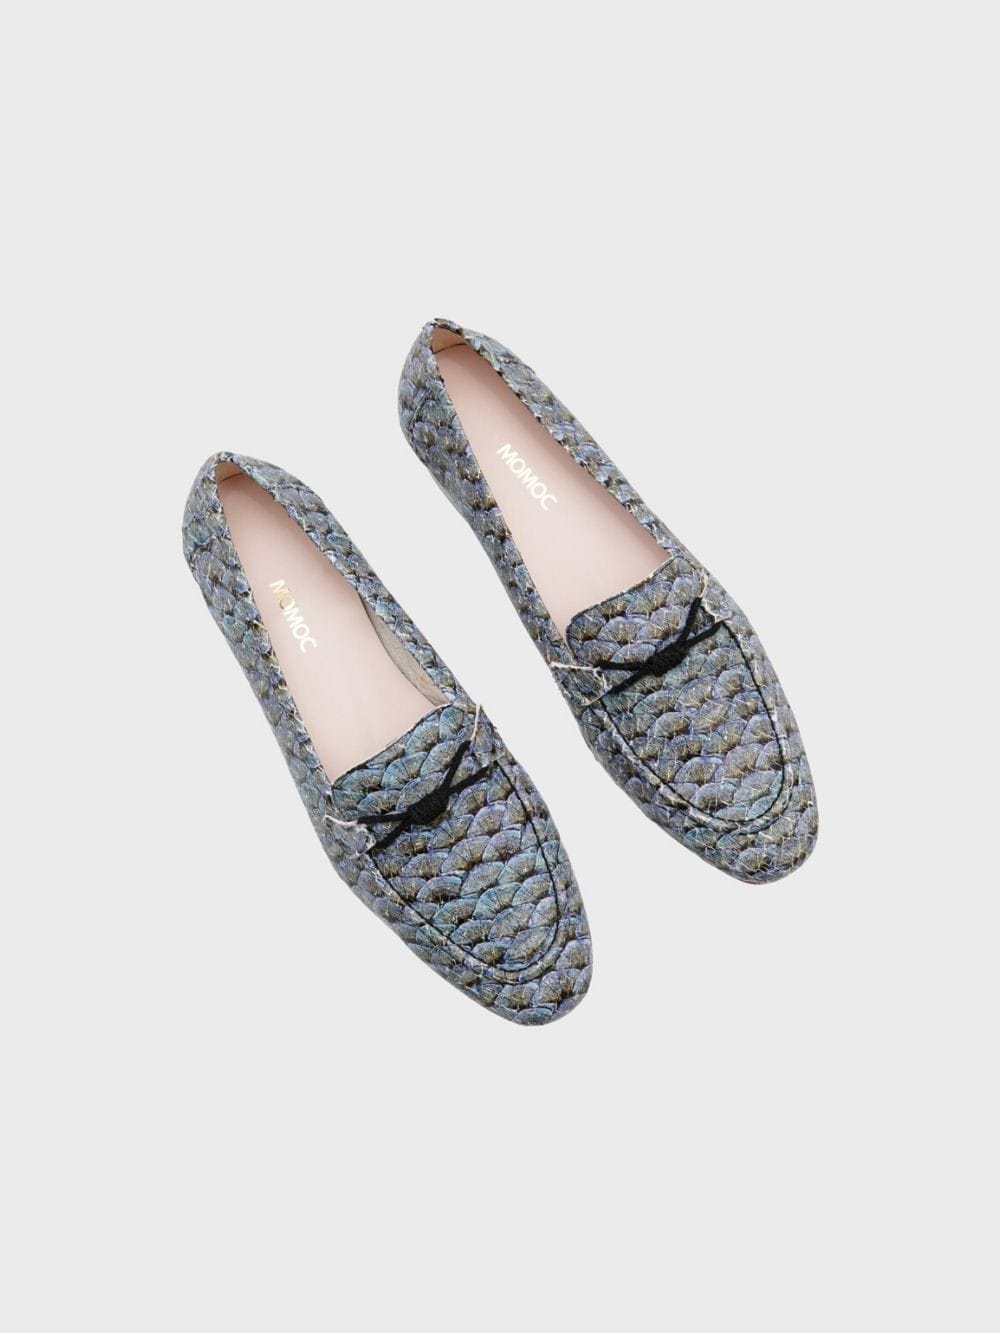 Ecological leather shoes and recycled materials-Saumon atlantique